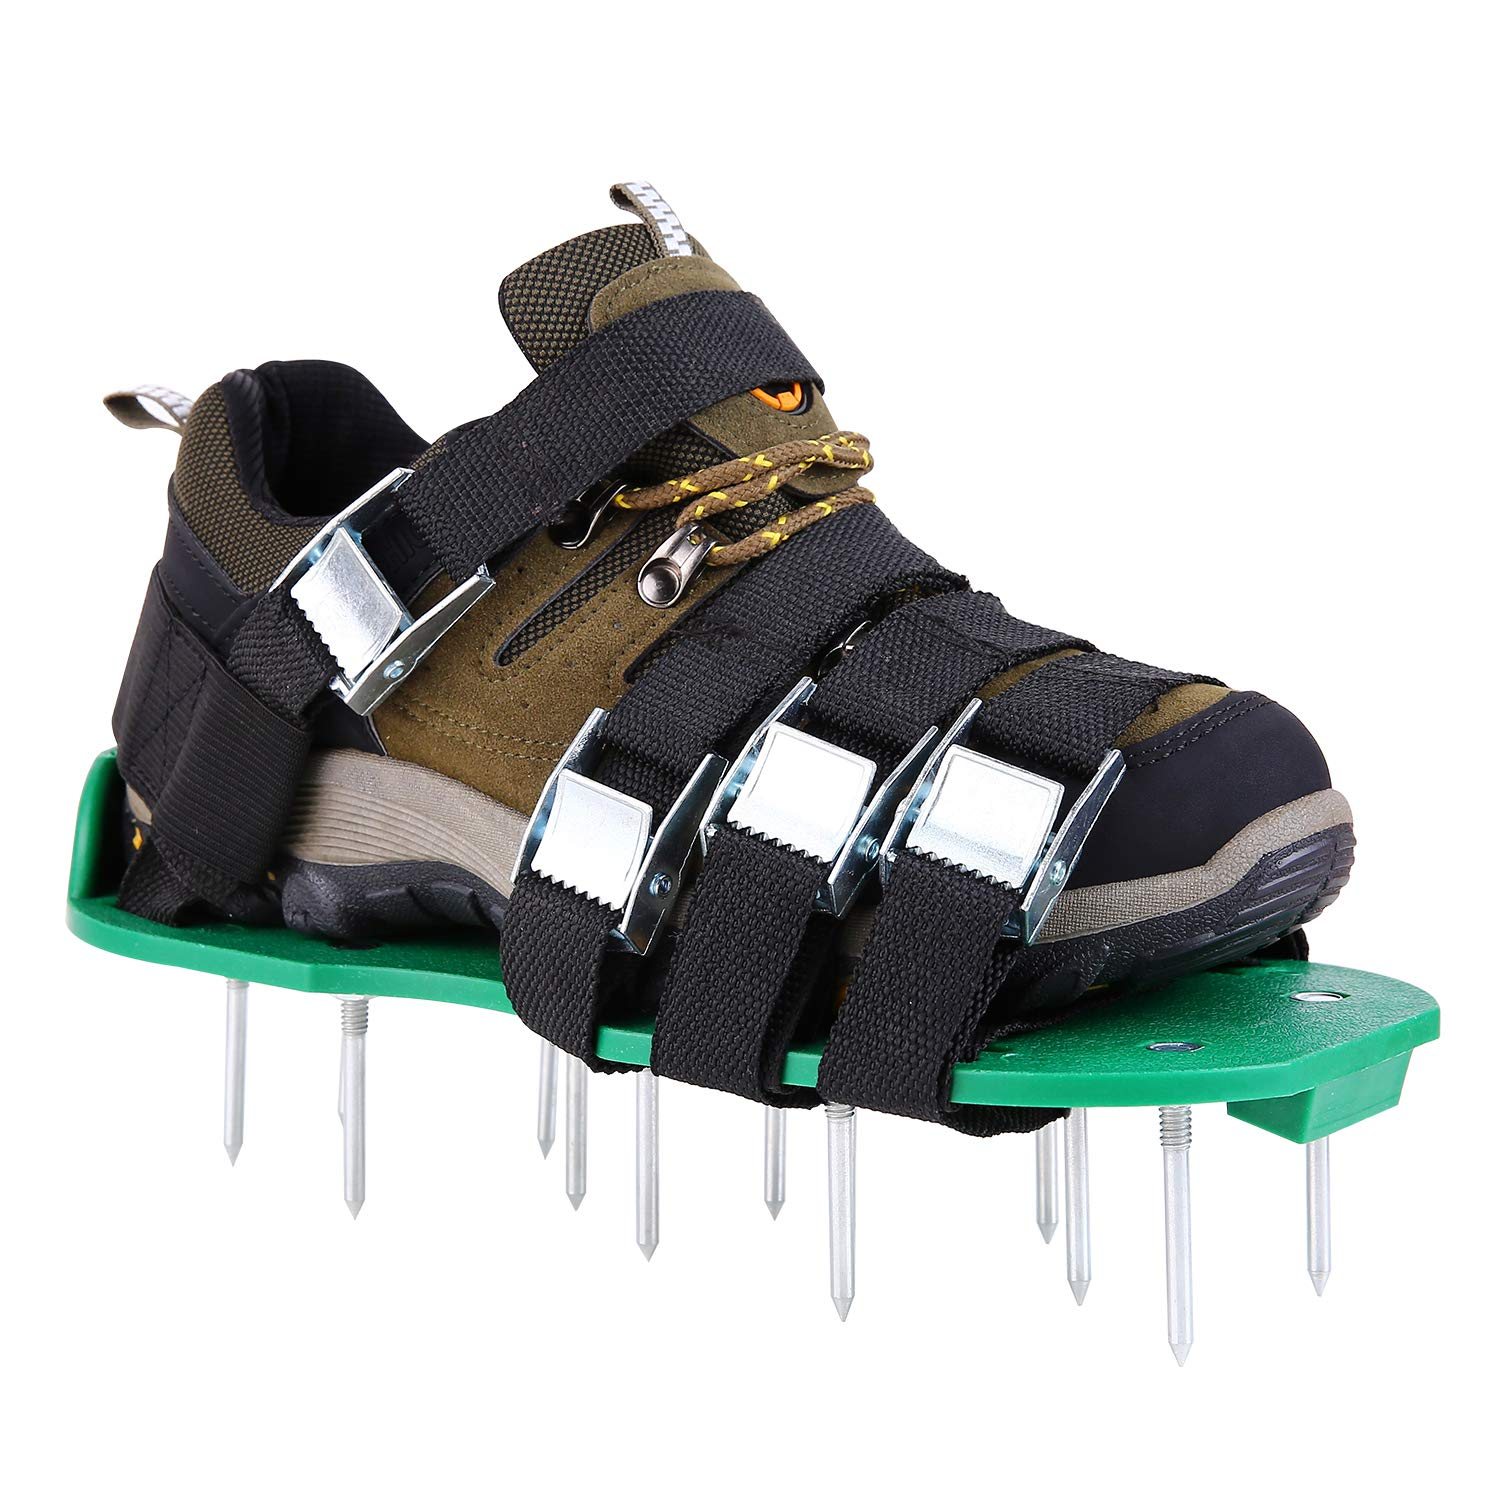 Ohuhu Lawn Aerator Shoes, 4 Adjustable Straps Aluminium Alloy Buckles & 1 Heel Elastic Band, Heavy Duty Spiked Sandals for Aerating Your Lawn Or Yard